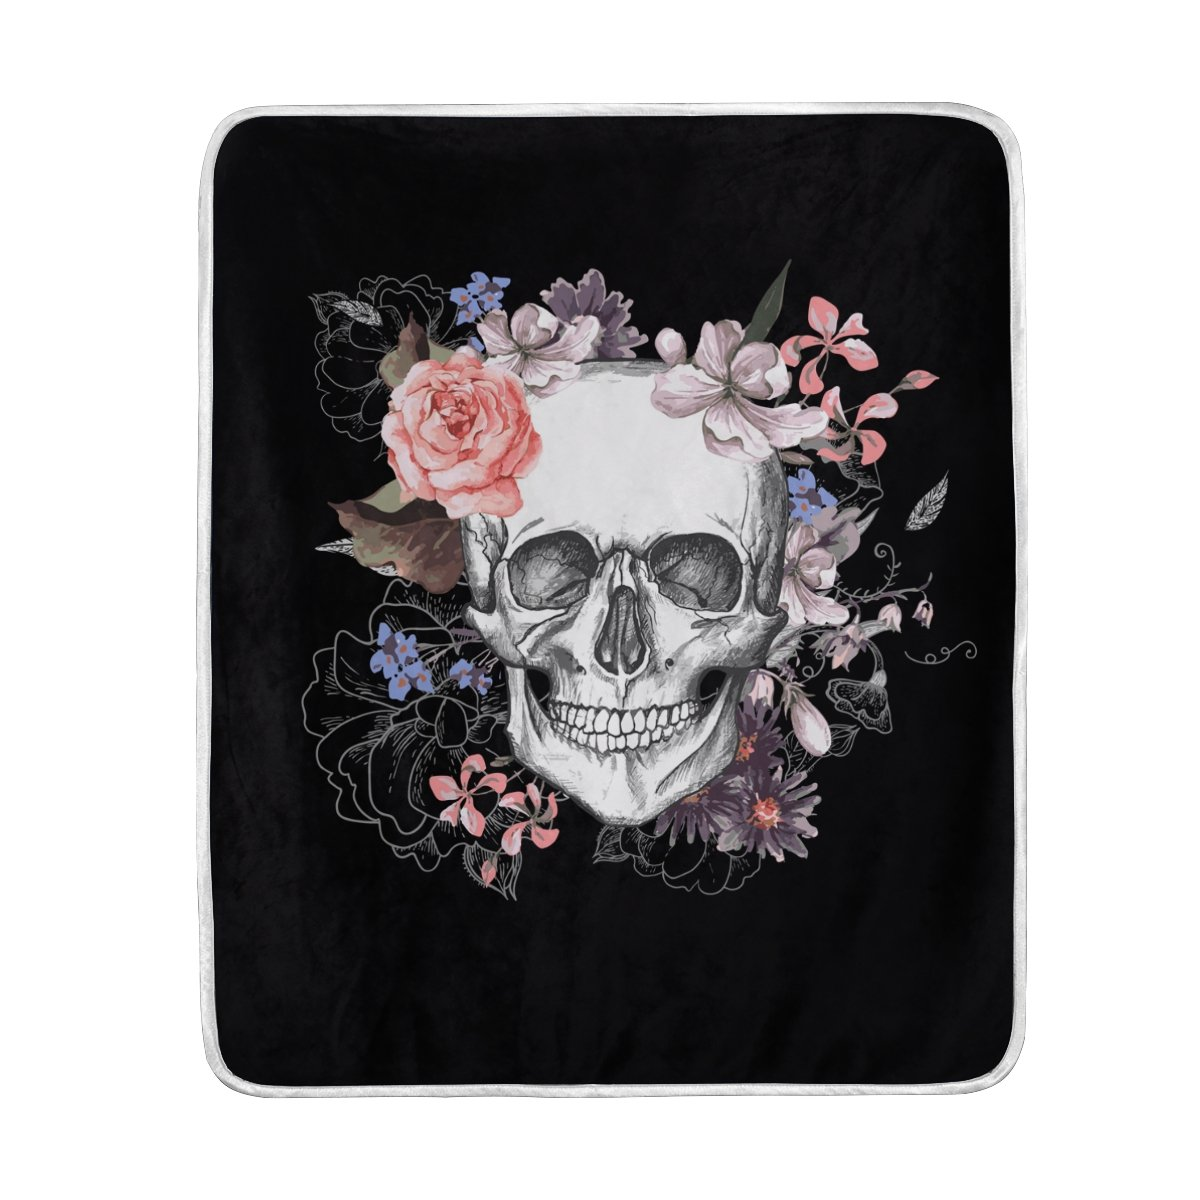 ALAZA Home Decor Black Floral Sugar Skull Soft Warm Blanket for Bed Couch Sofa Lightweight Travelling Camping 60 x 50 Inch Throw Size for Kids Boys Girls